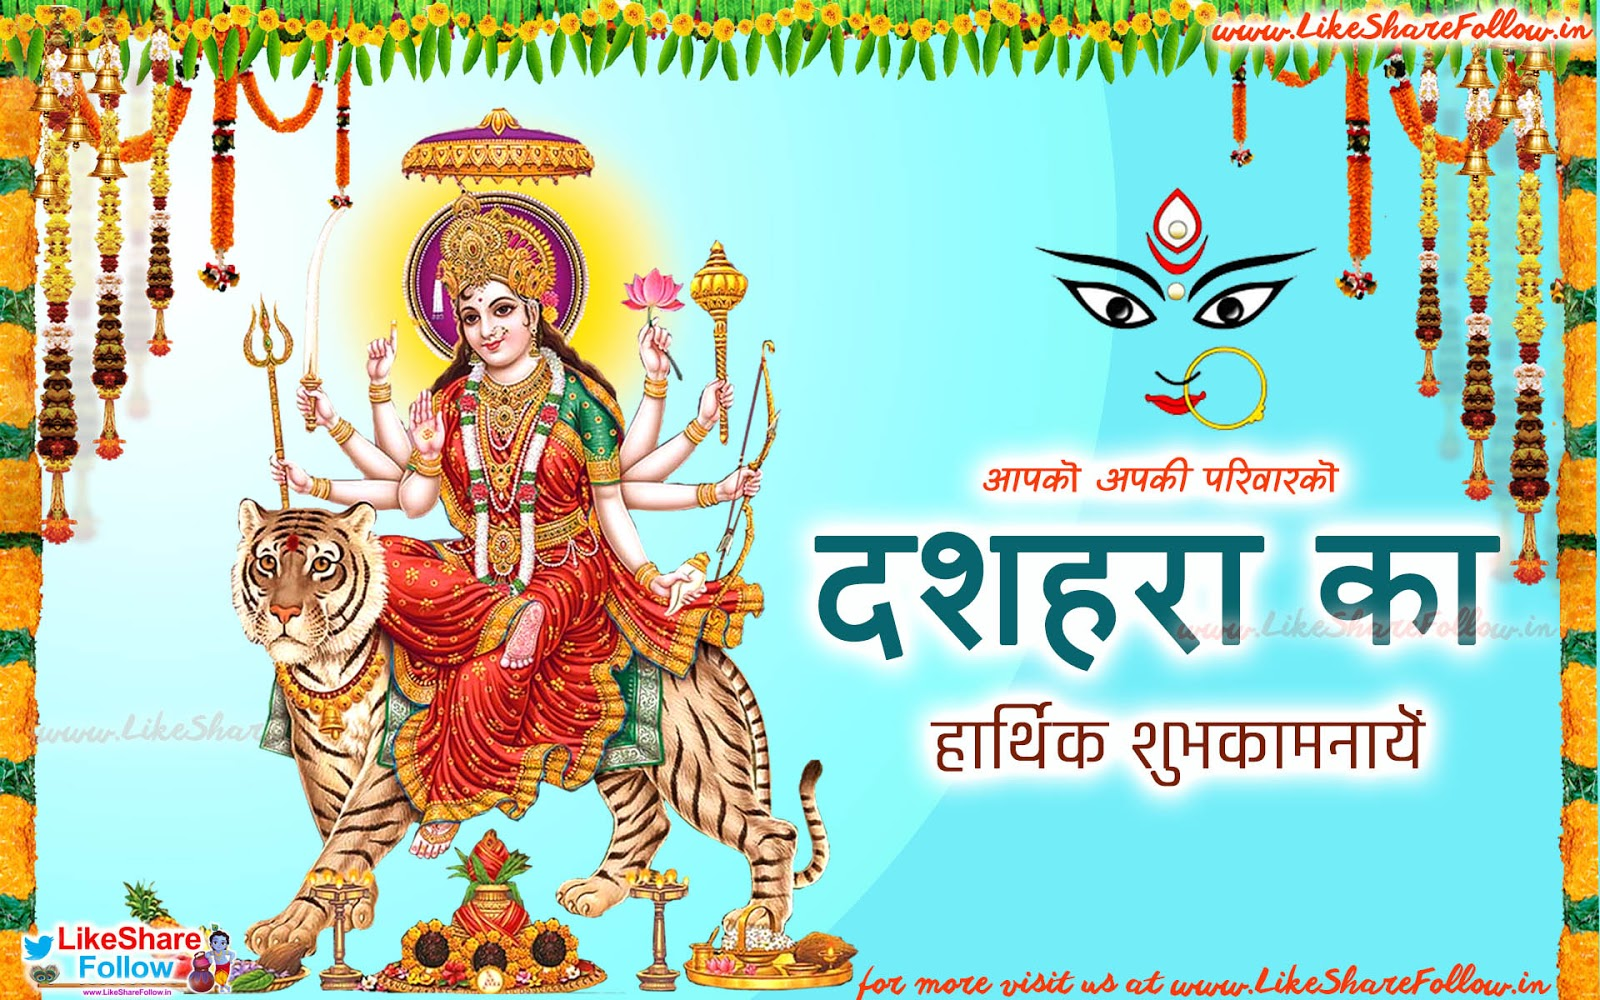 Happy Dussehra 2017 Greetings In Hindi Like Share Follow